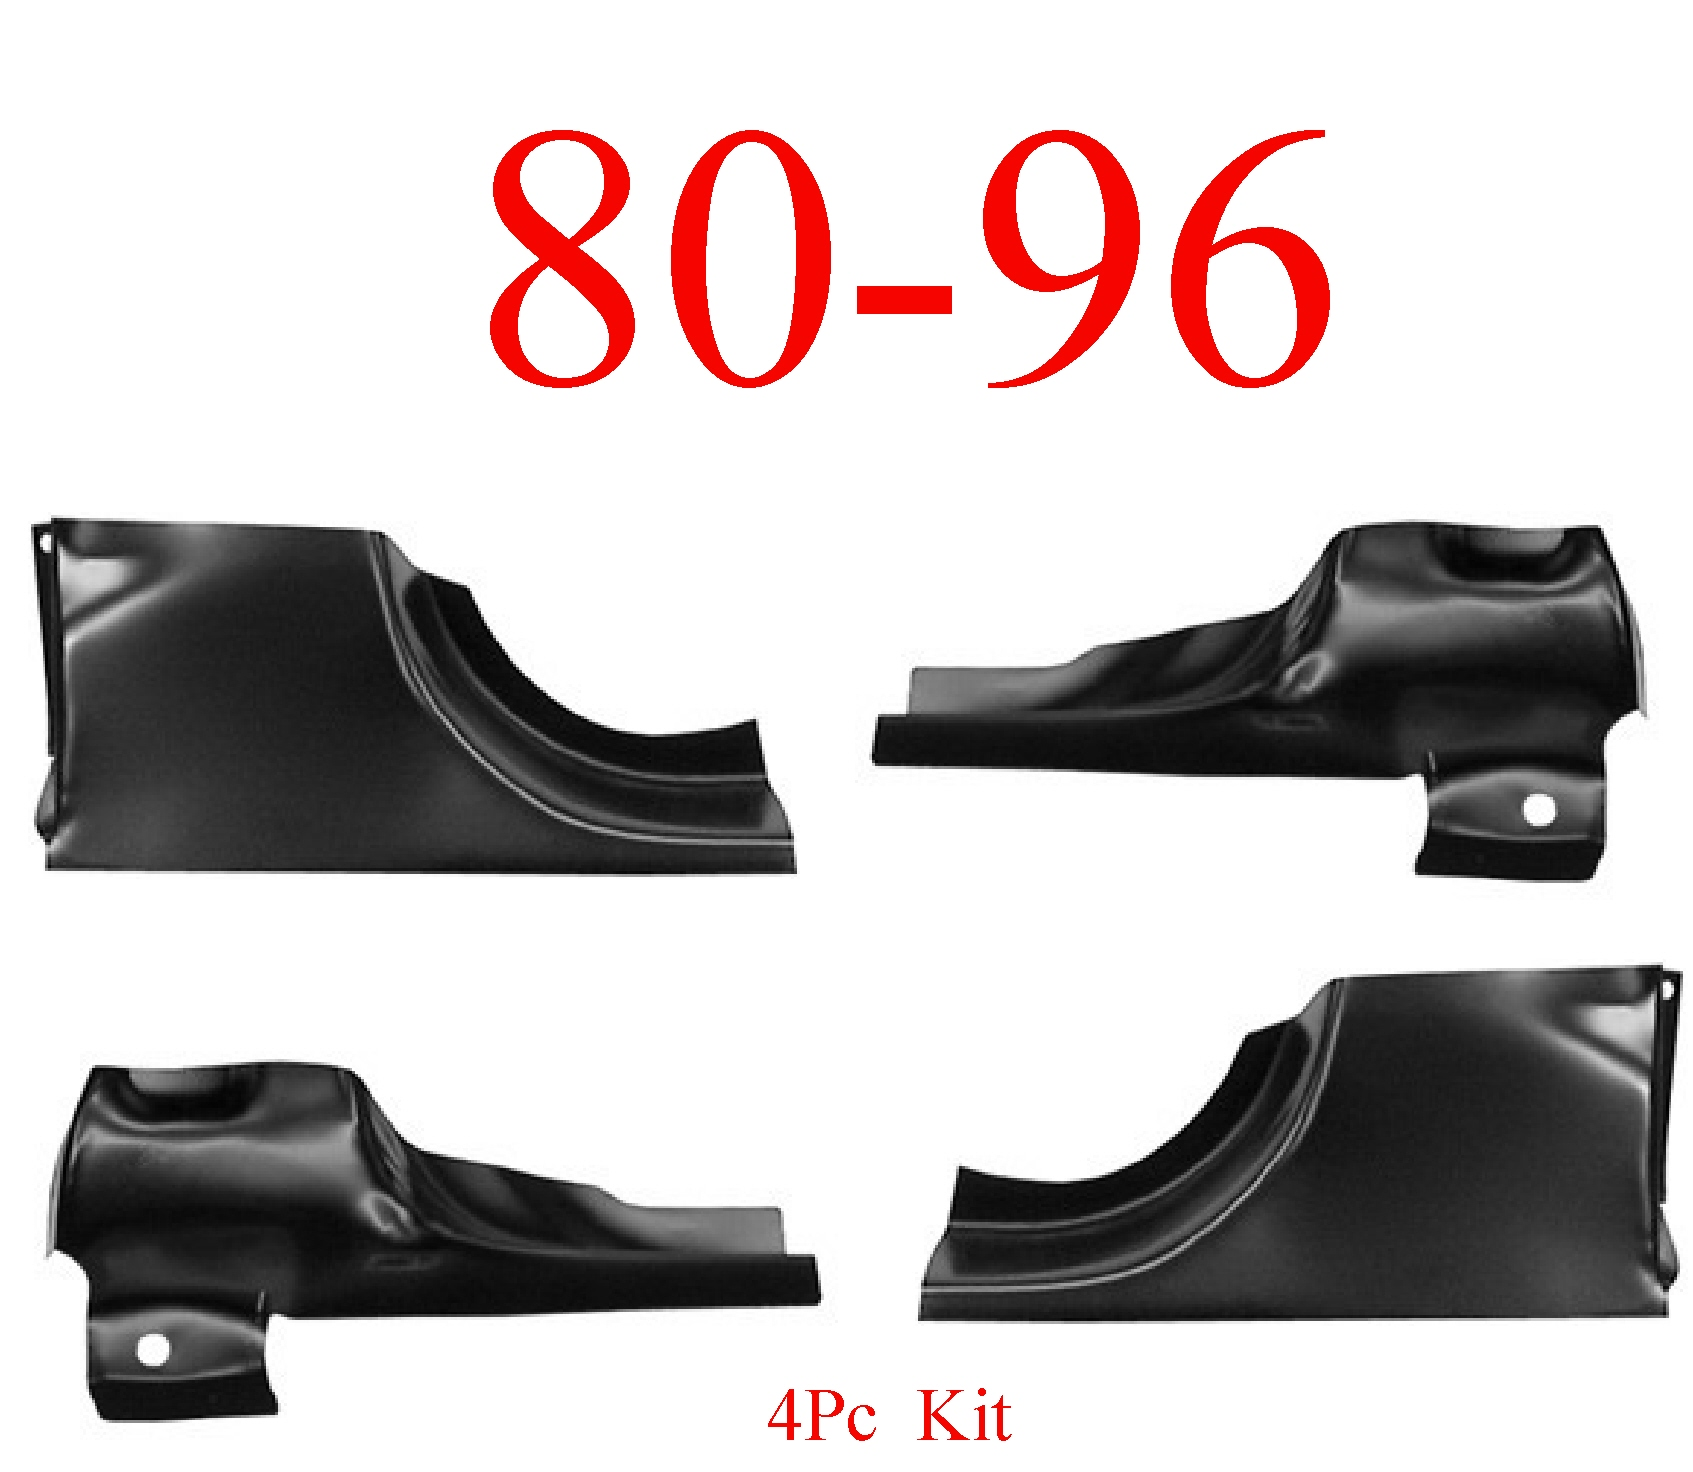 80-96 Ford 4Pc Front & Rear Door Post Kit